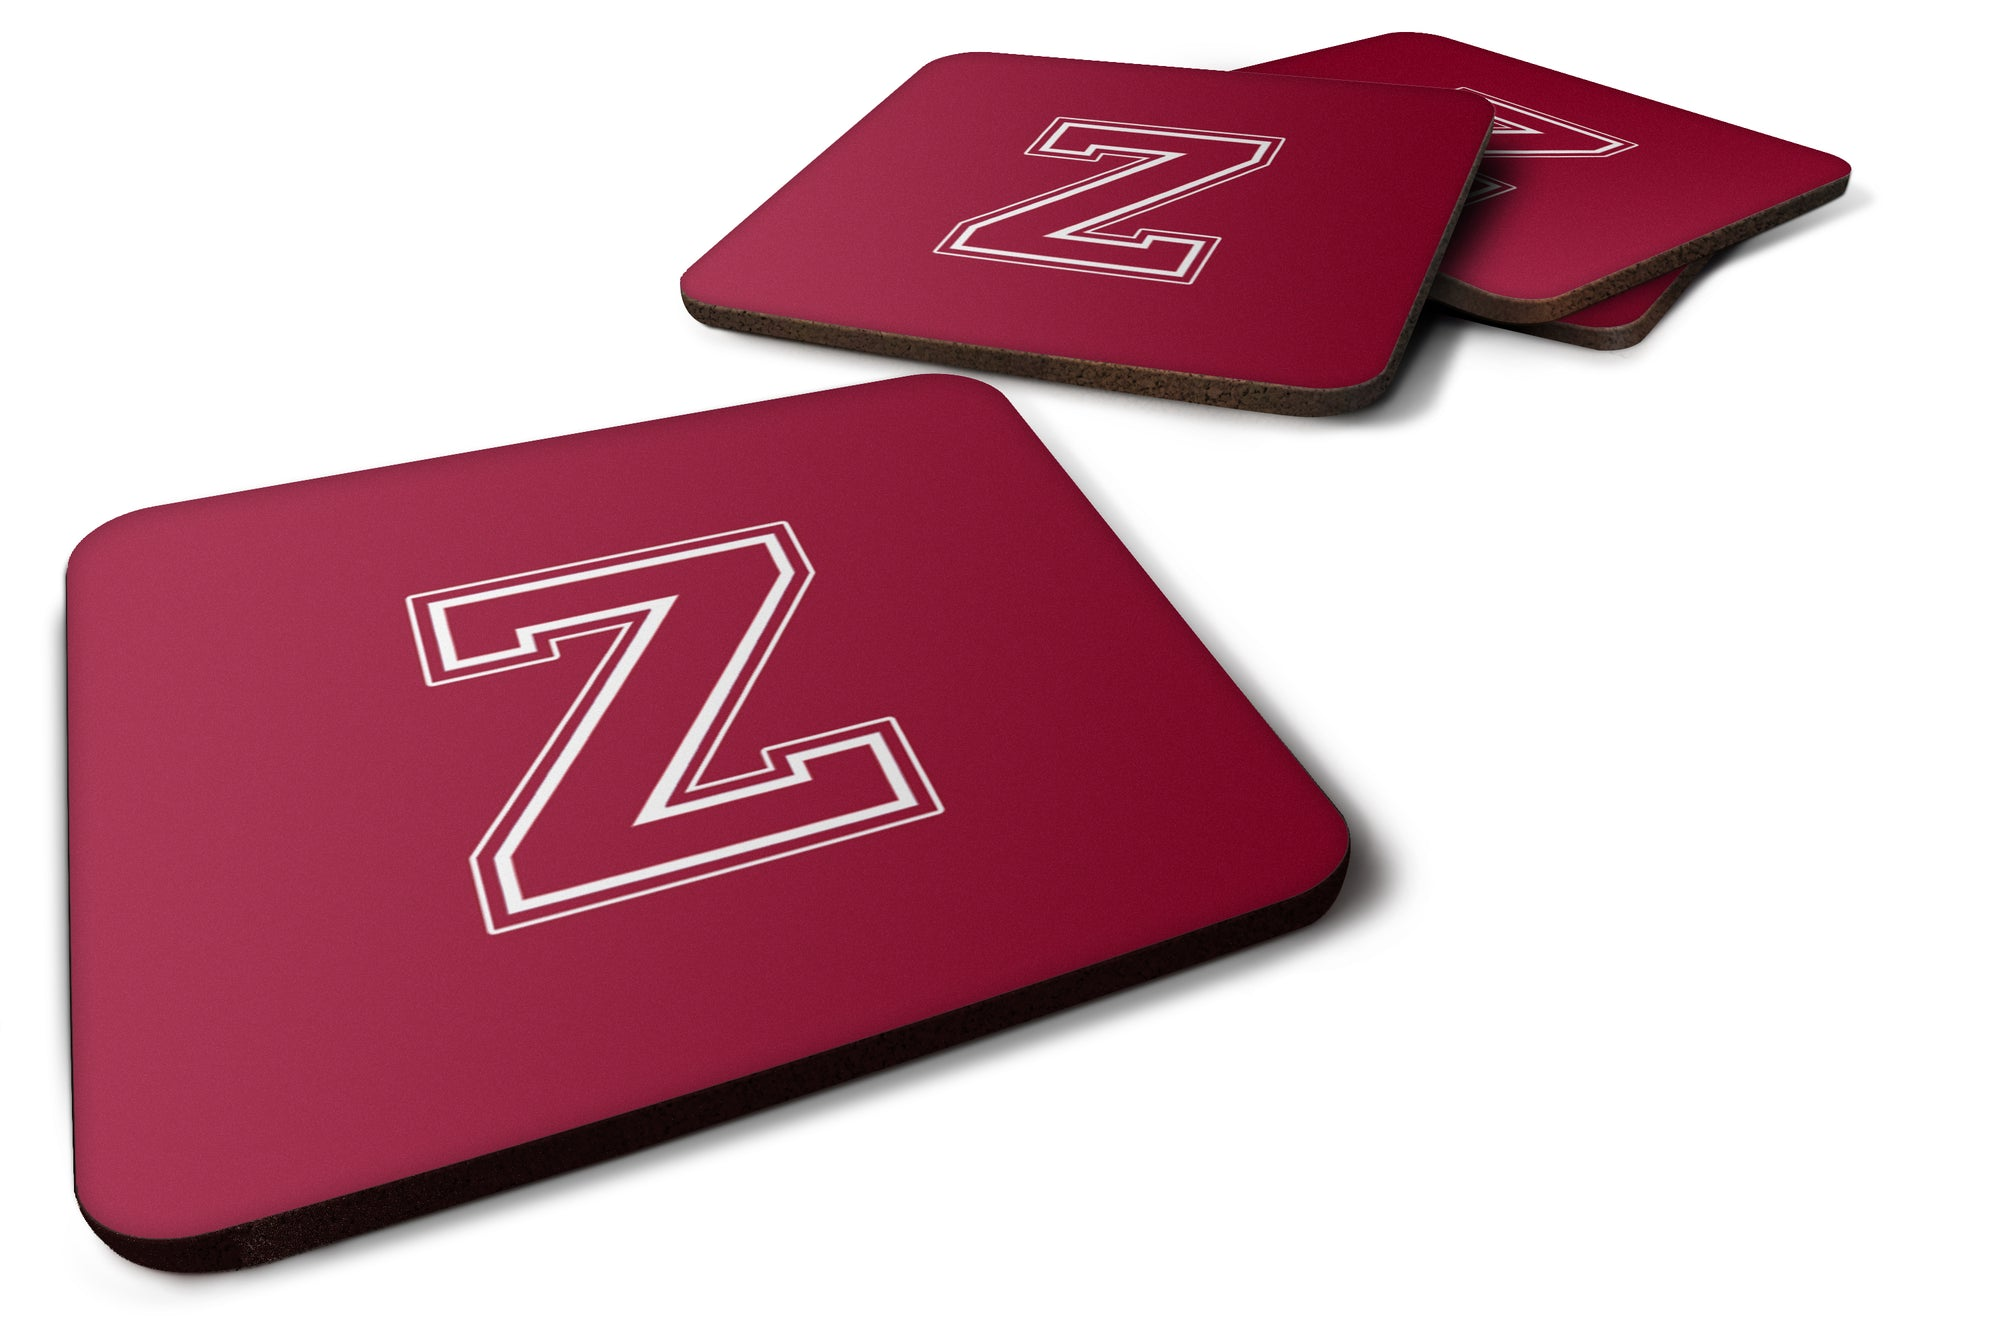 Set of 4 Monogram - Maroon and White Foam Coasters Initial Letter Z by Caroline's Treasures